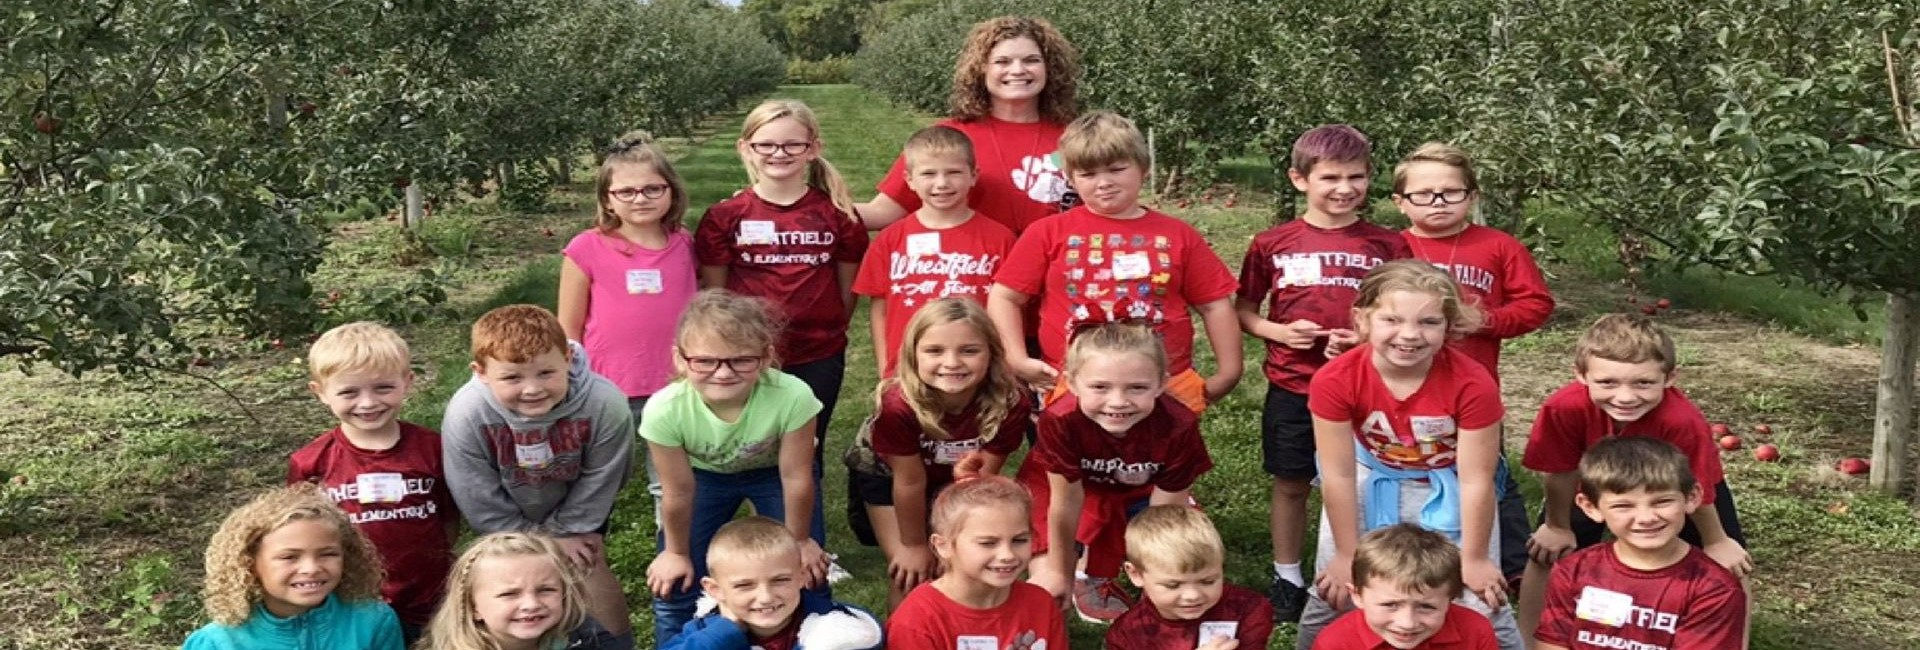 Mrs. Rockley's Class is the Pick of the Orchard